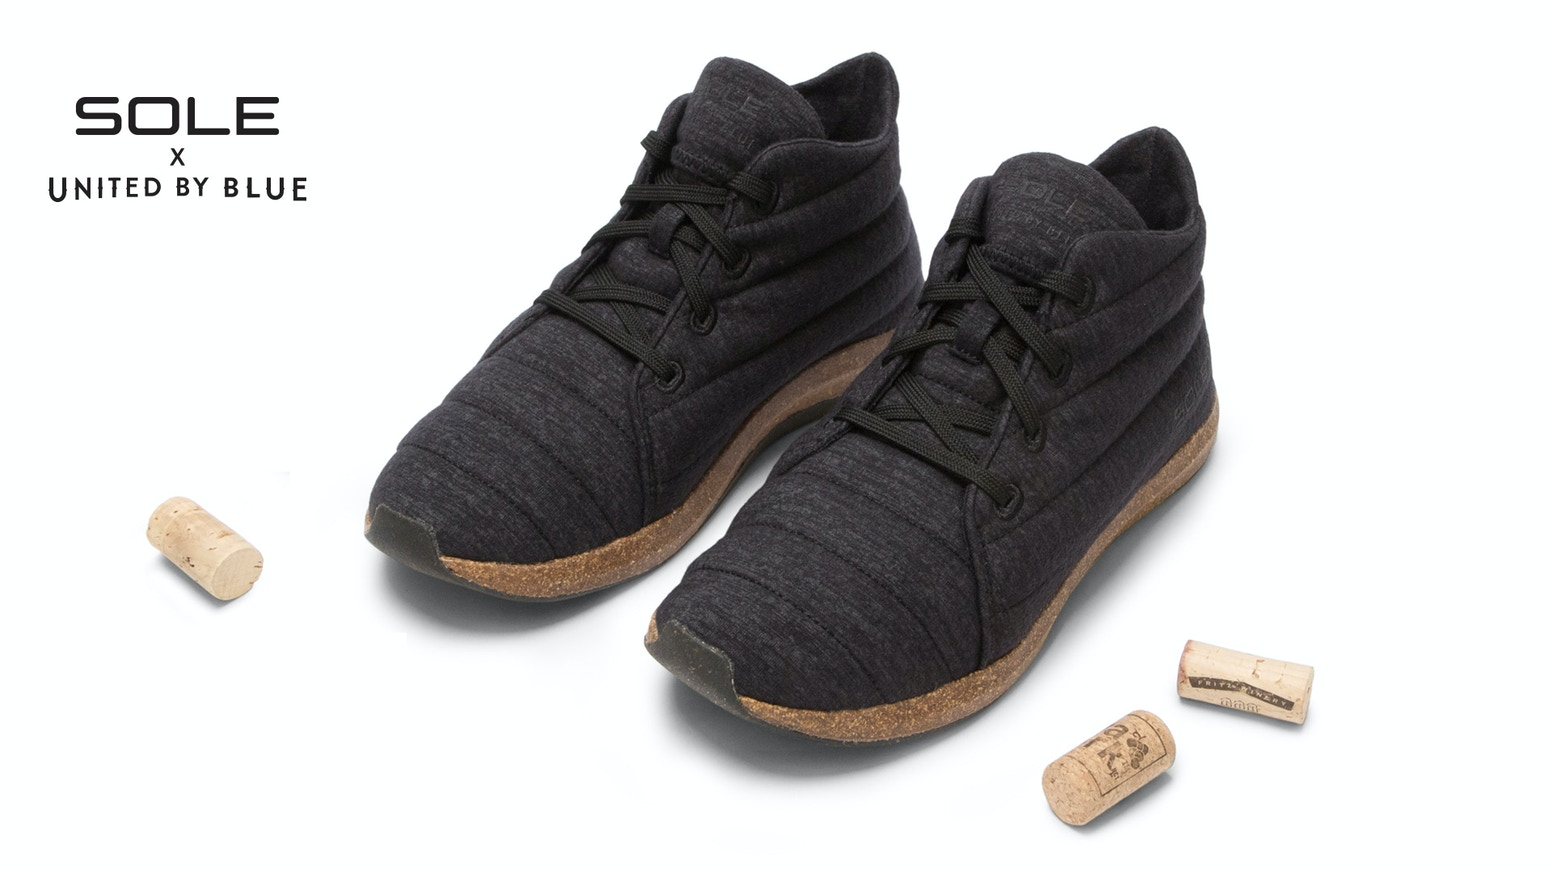 A comfortable, stylish, and durable shoe made from recycled cork, bison fiber, merino wool, rice rubber, algae foam, and bamboo.